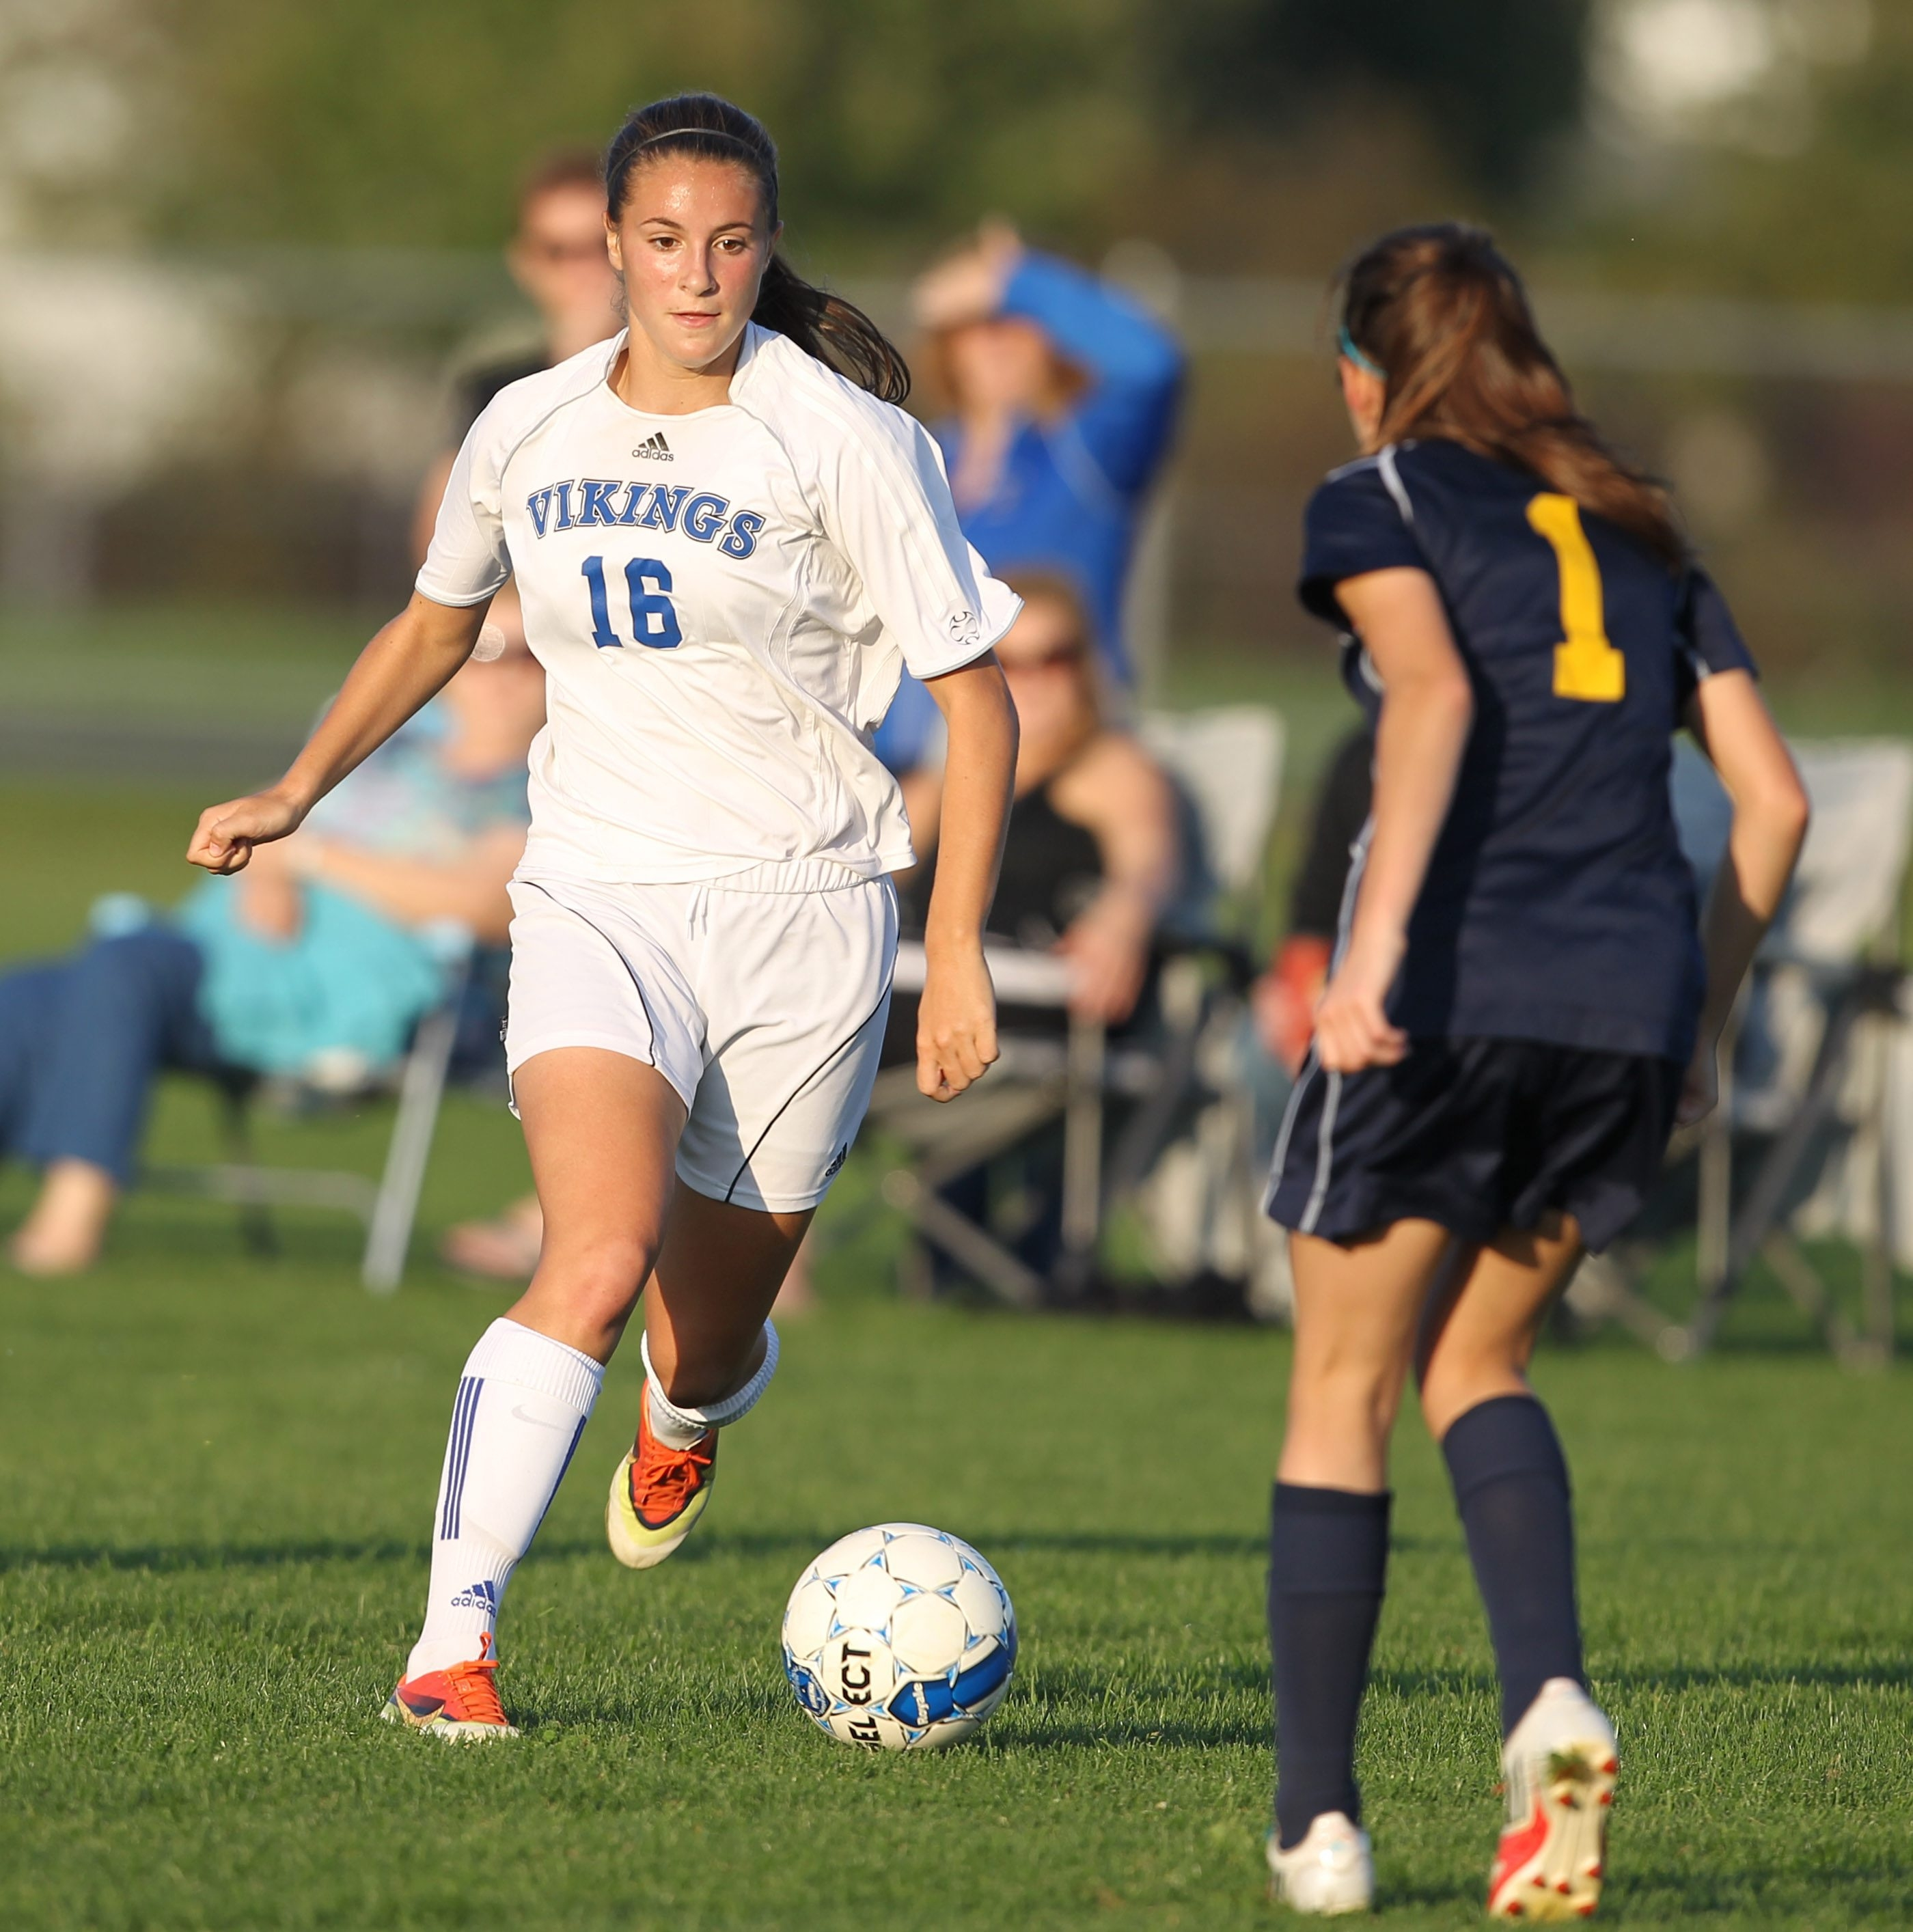 Coming attractions: Madisyn Pezzino and the No. 2 seeded Grand Island girls soccer team plays No. 6 Hamburg today at Depew at 4:30 p.m. in a Class A semifinal.